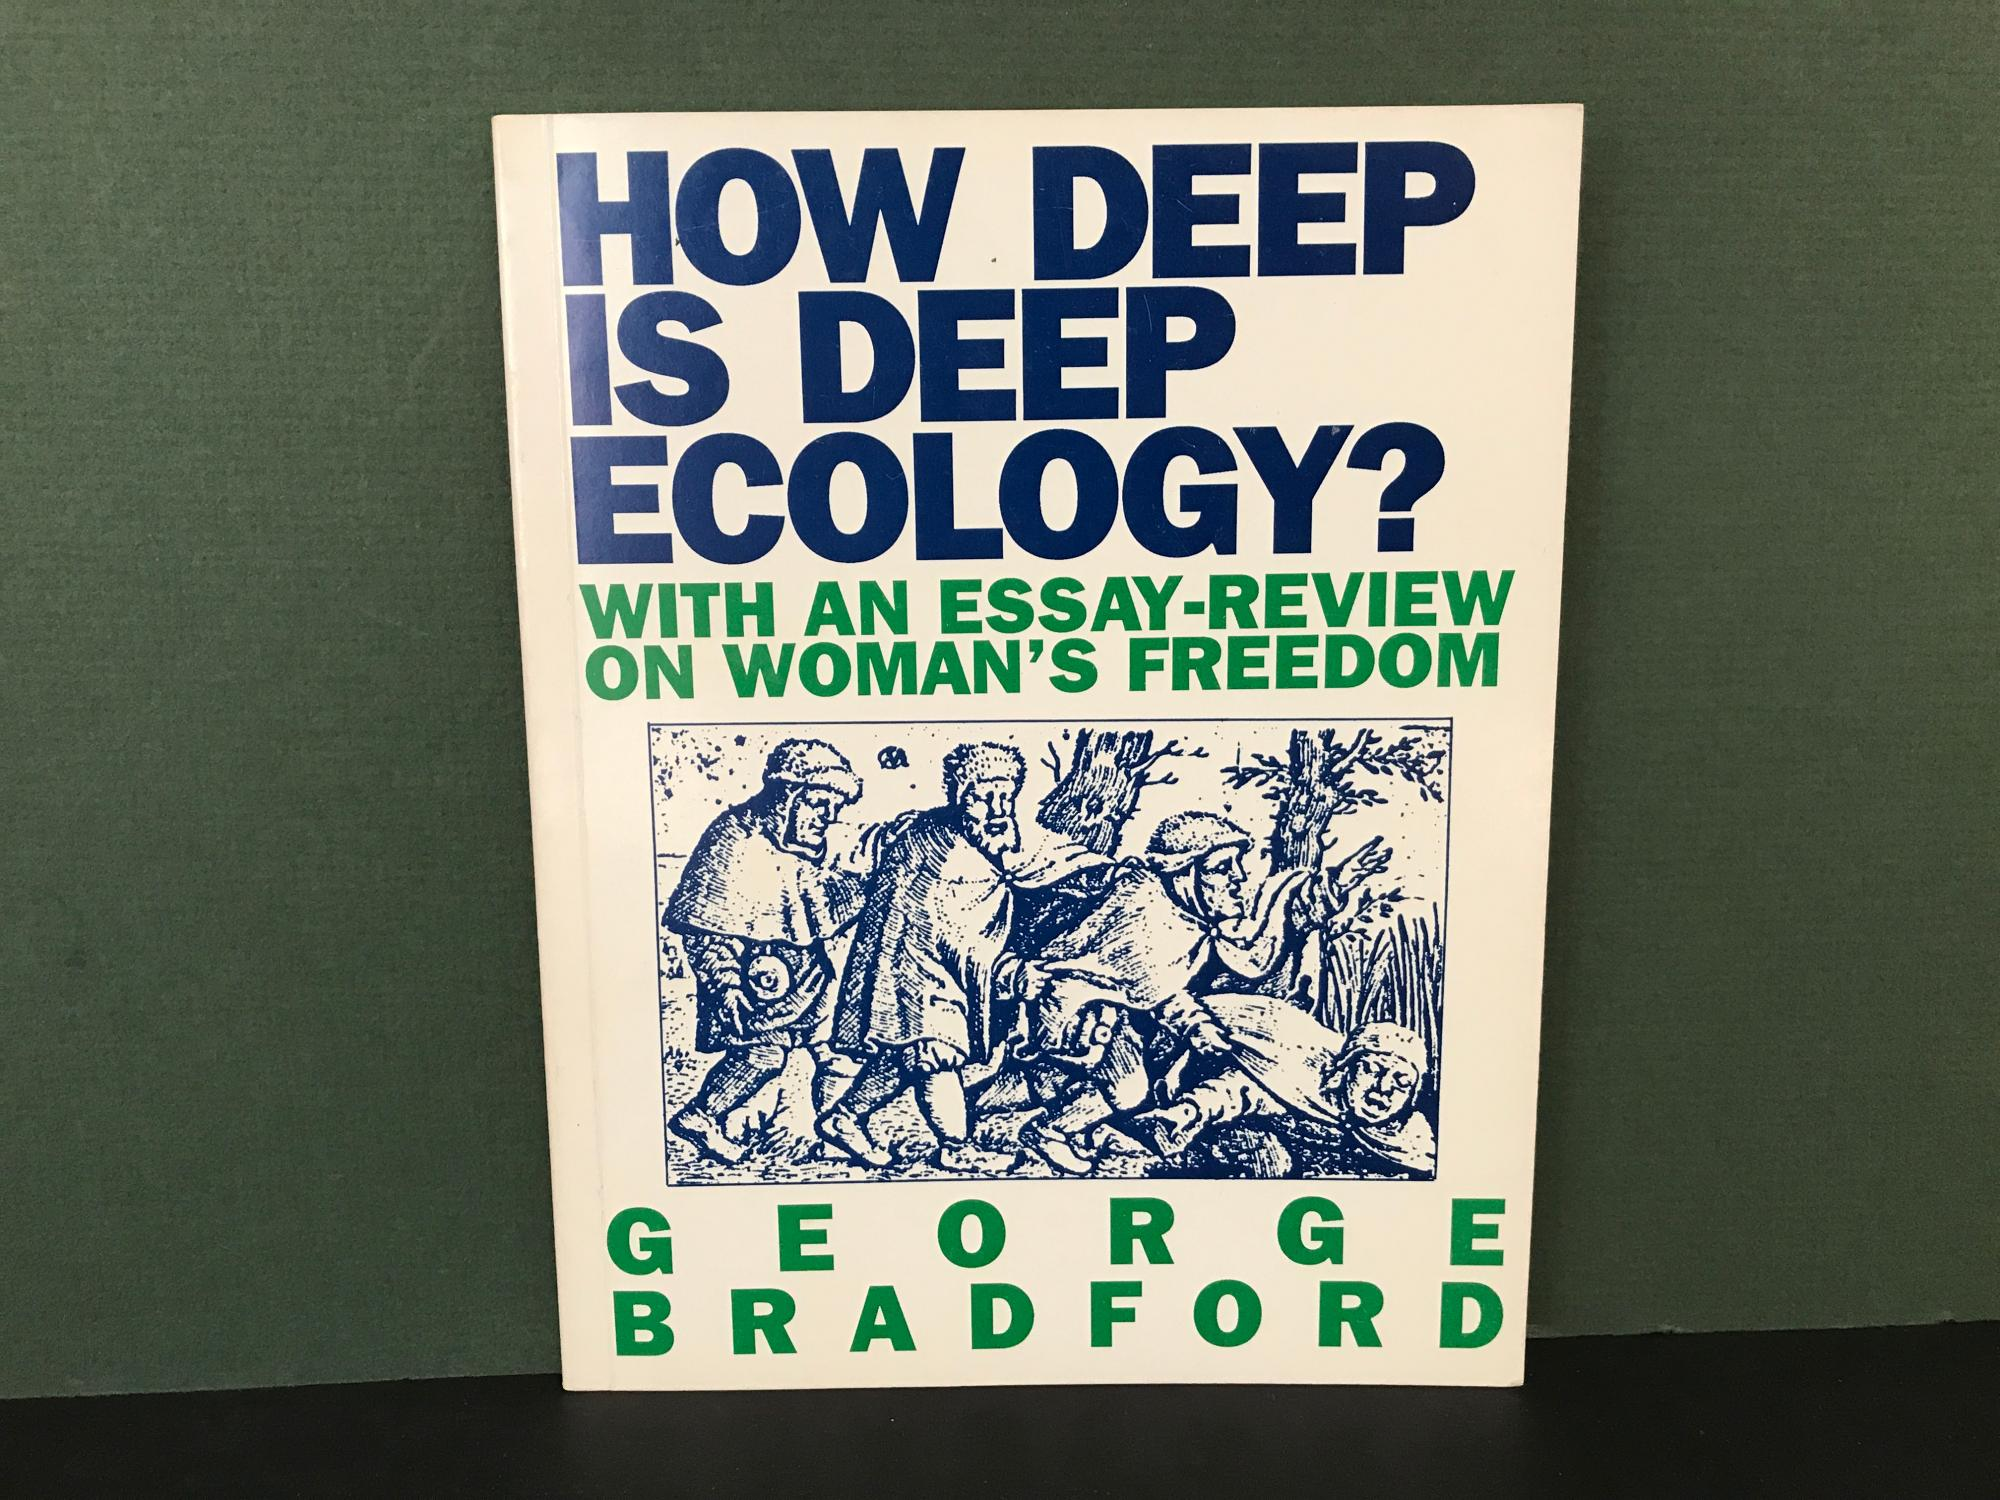 How Deep is Deep Ecology? - With an